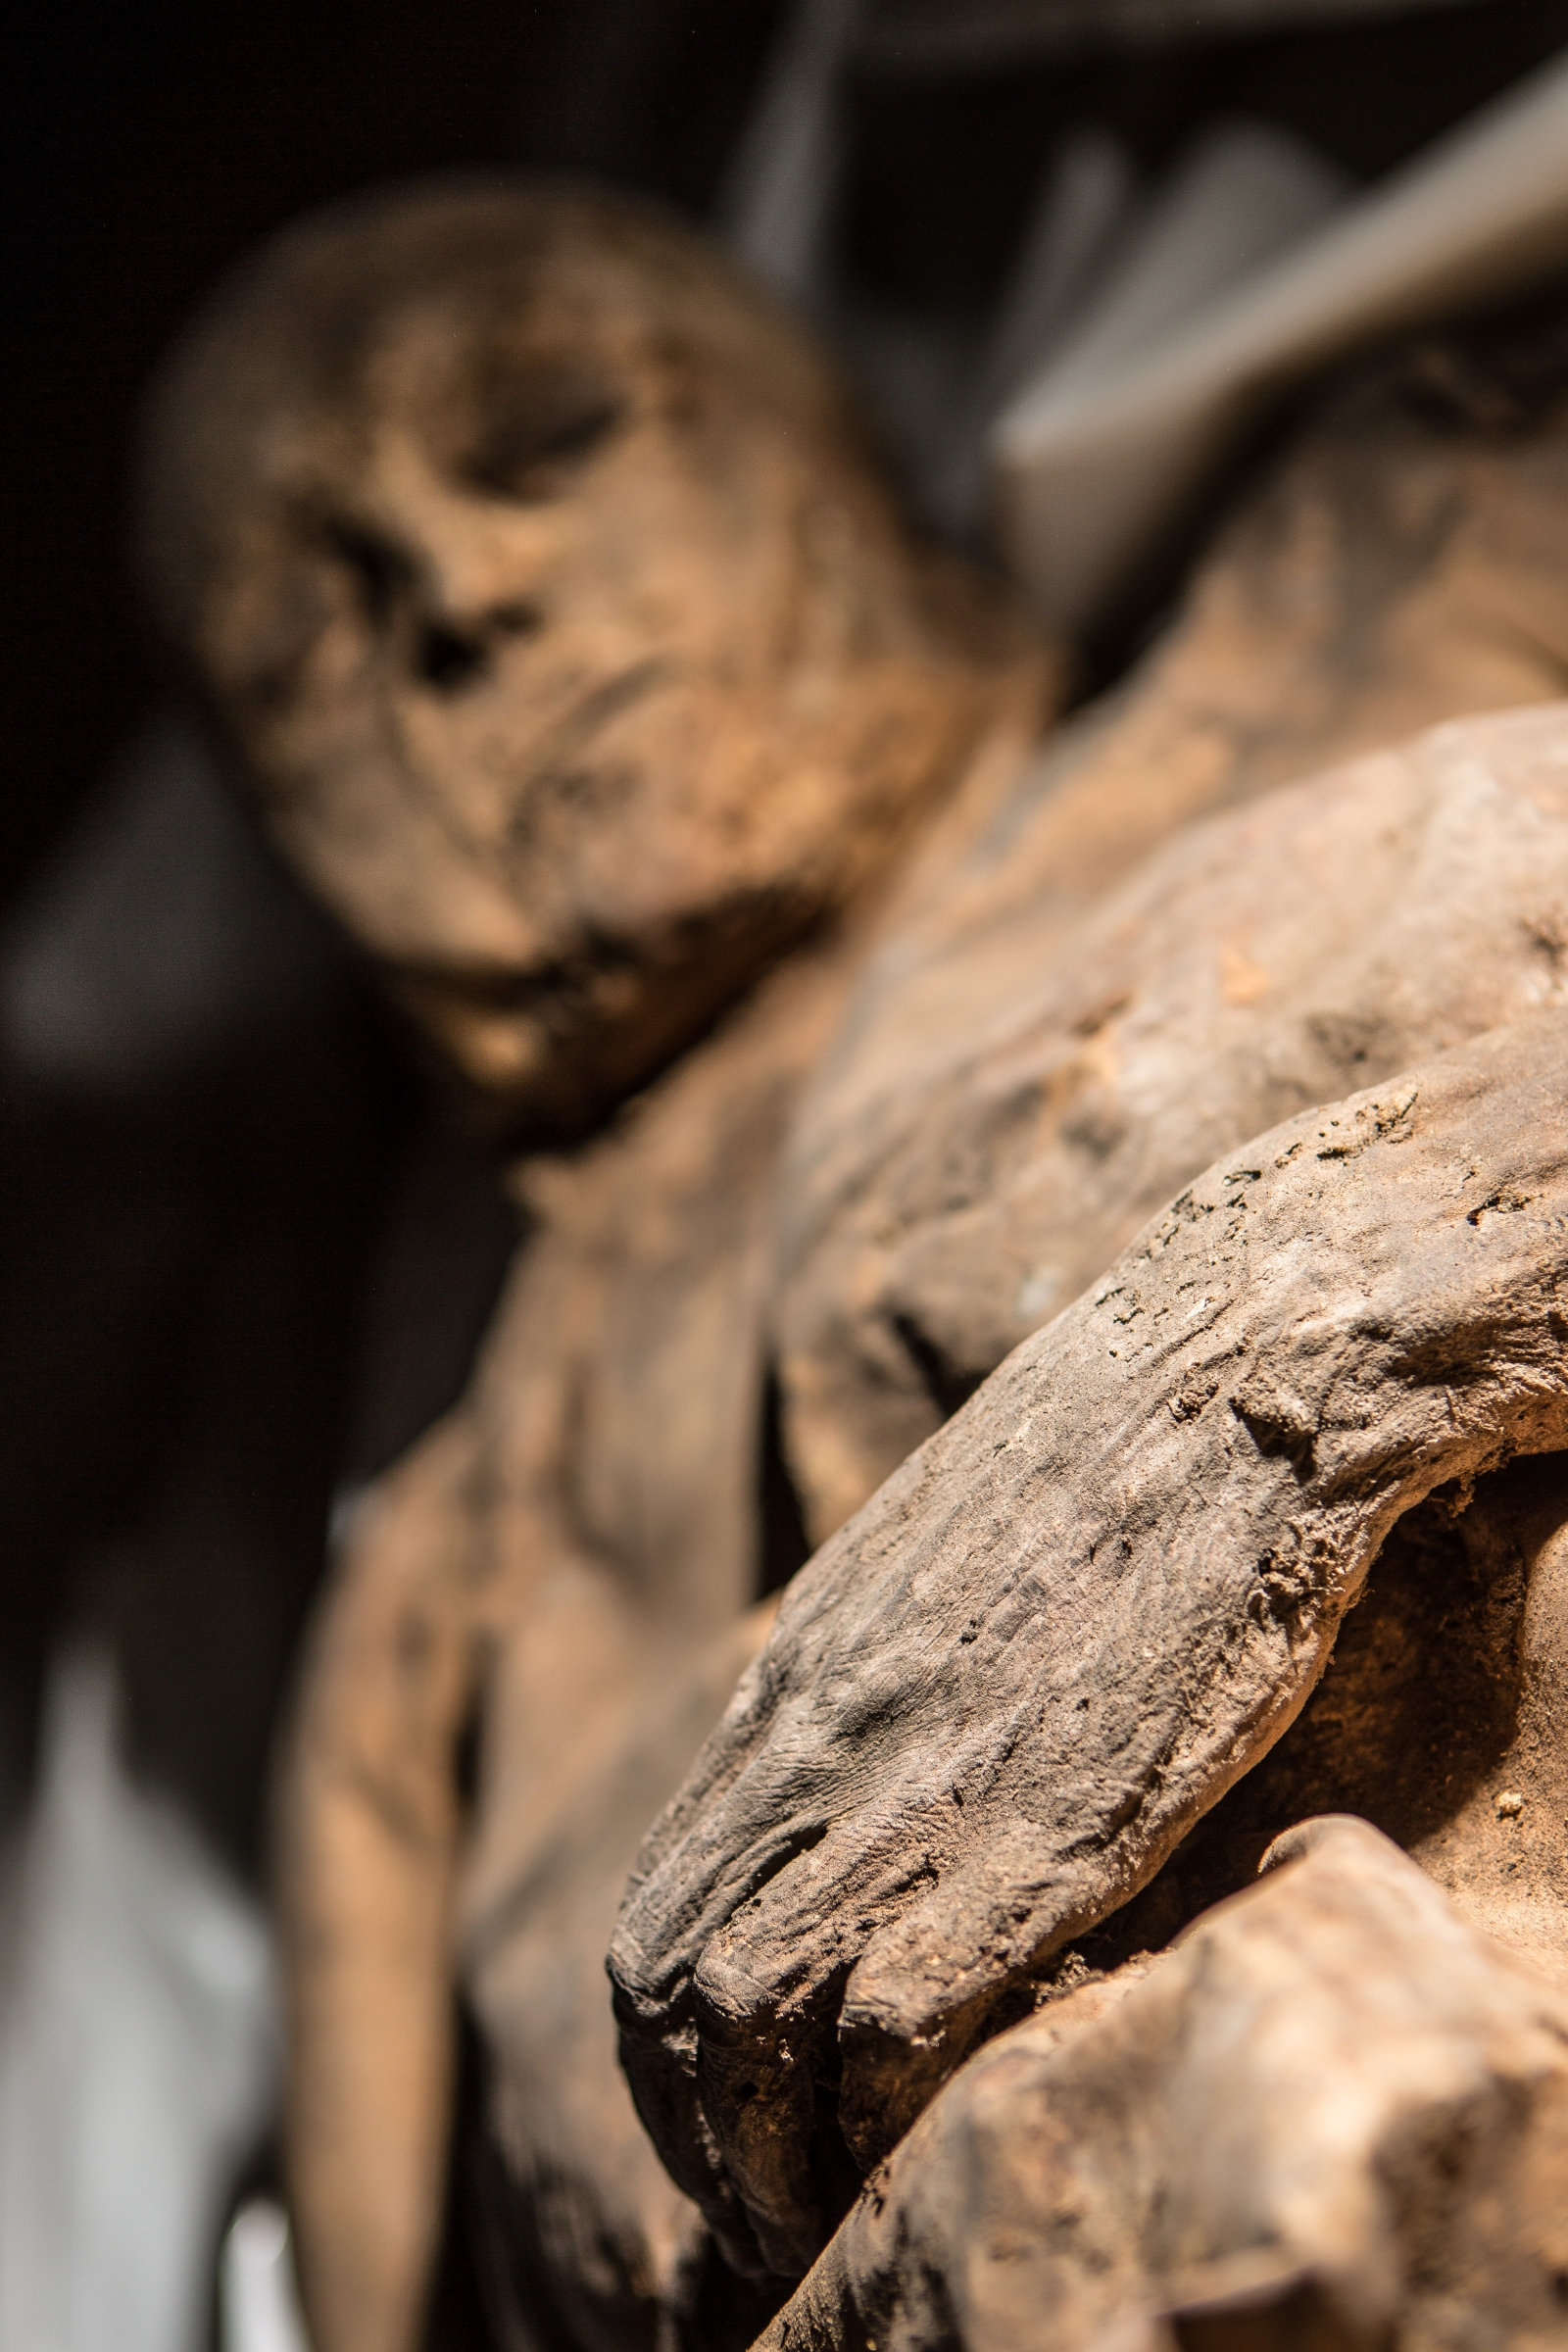 smallpox mummy